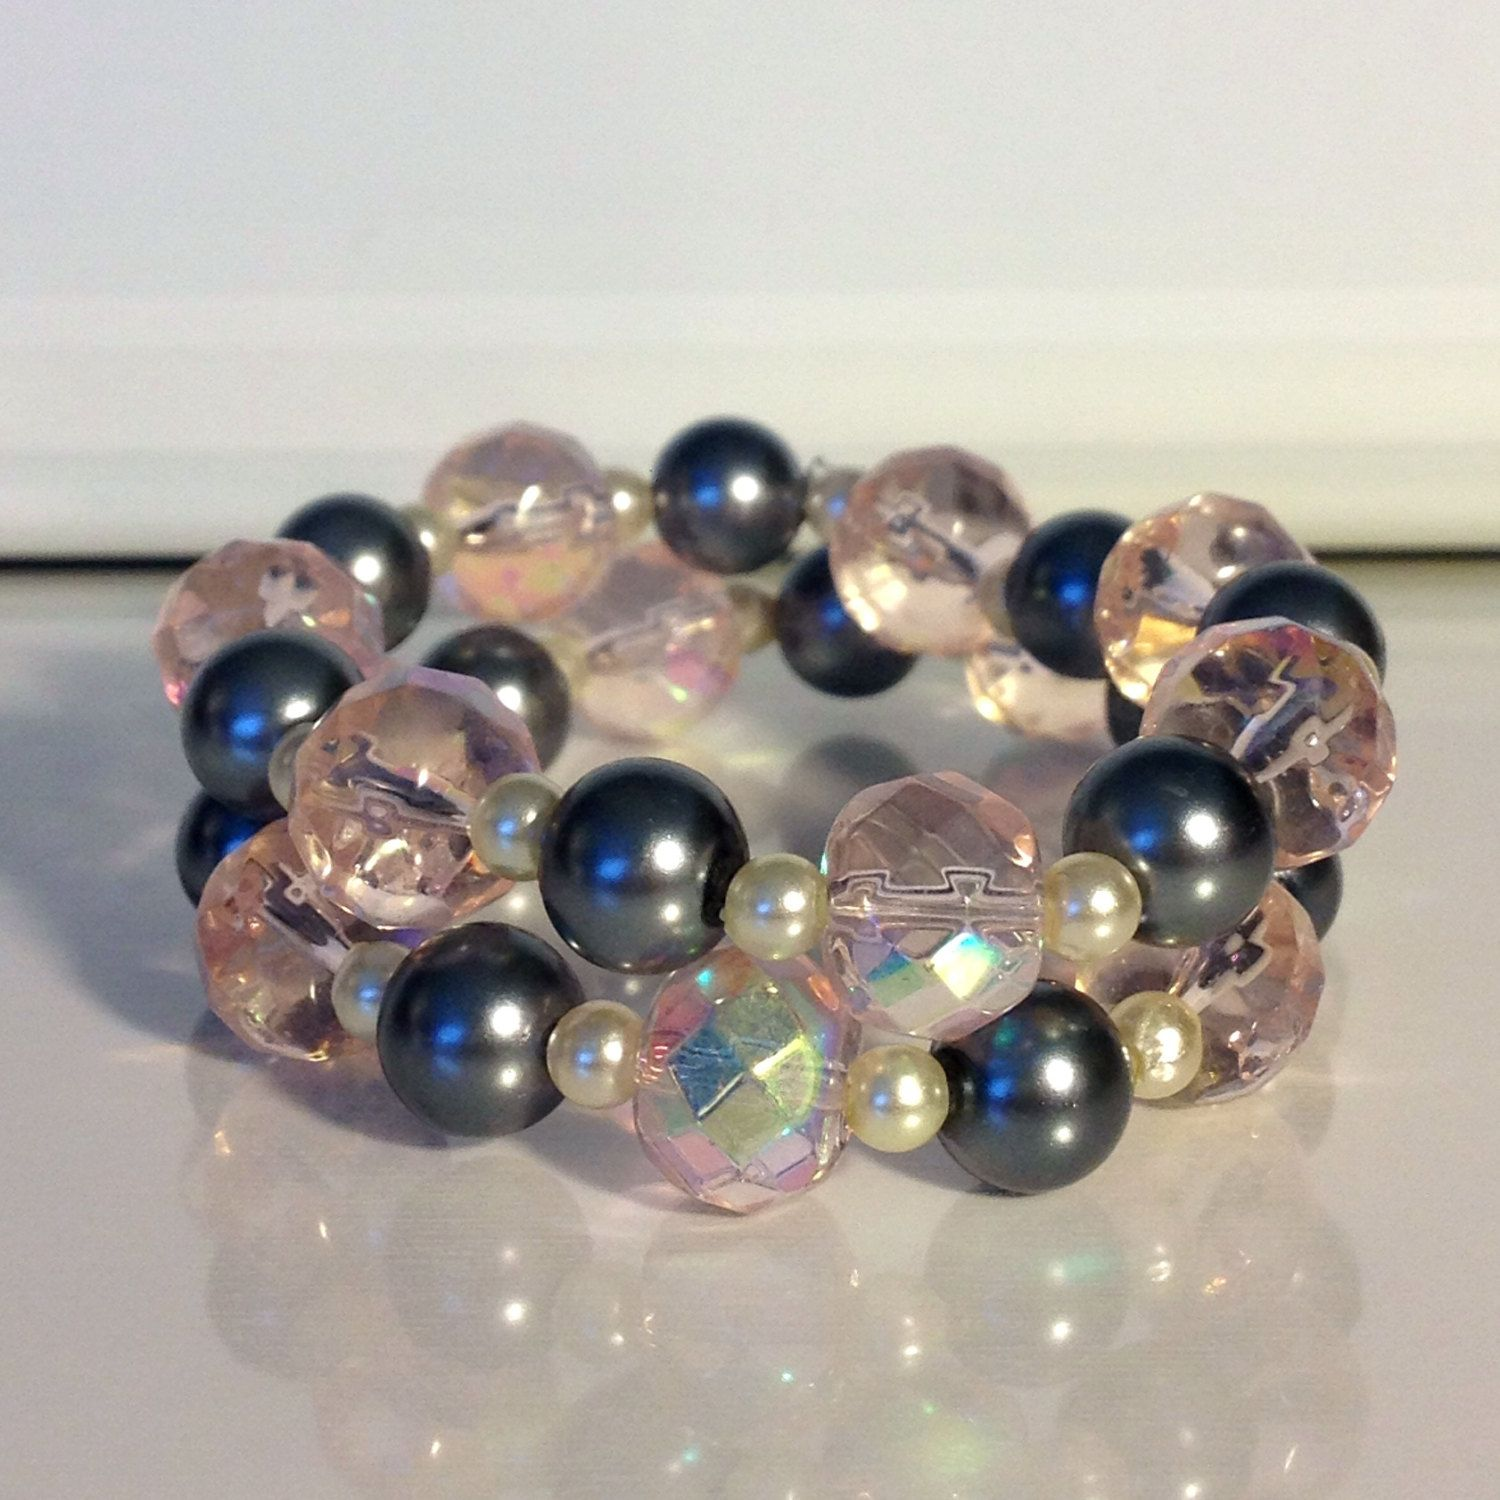 Silver and pink elastic bracelets via etsy jewelry